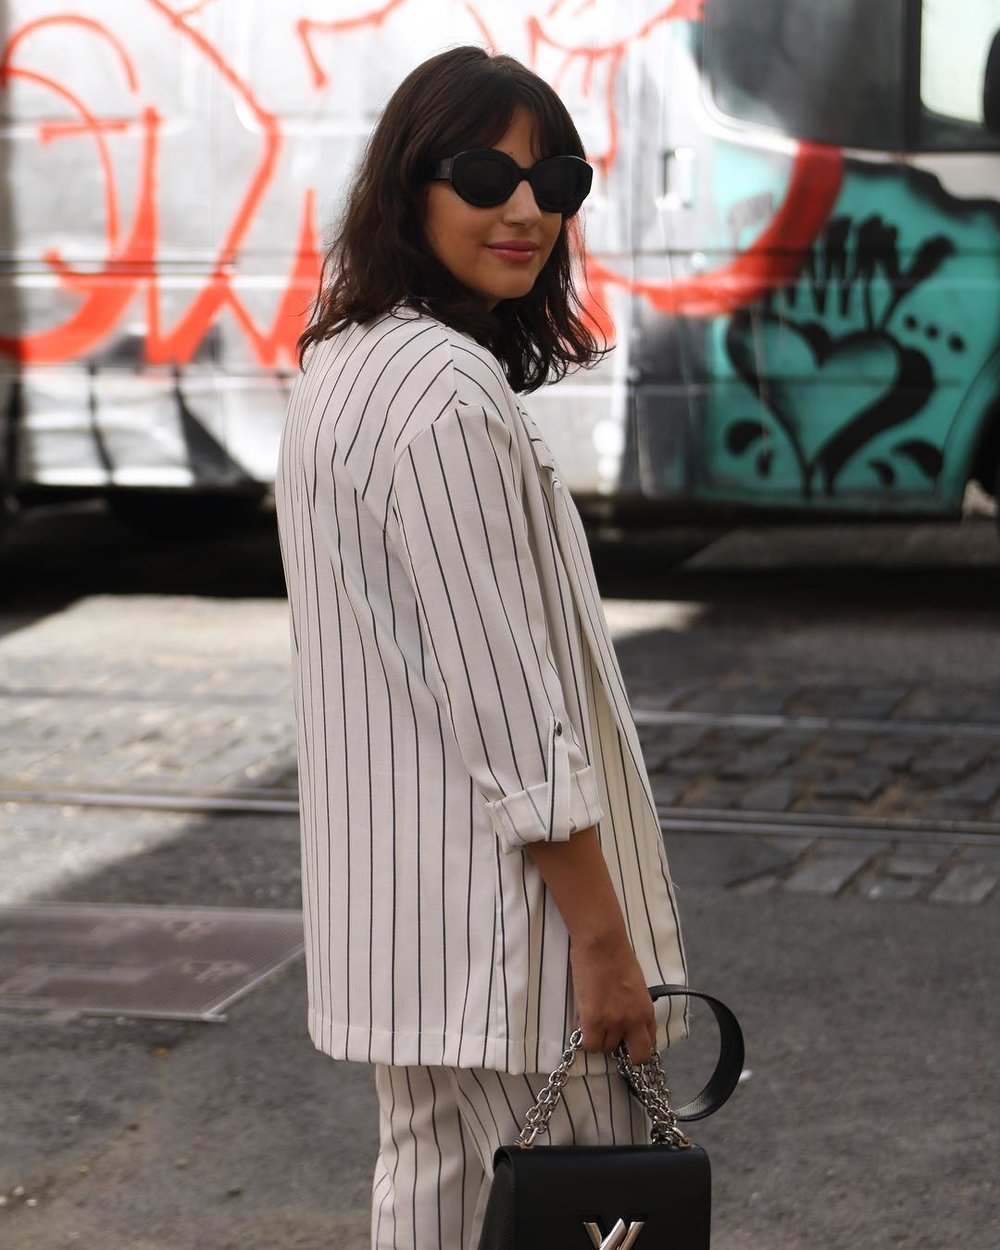 Mafalda Nunes with Darkside Ophelia Black Sunglasses in suit to work